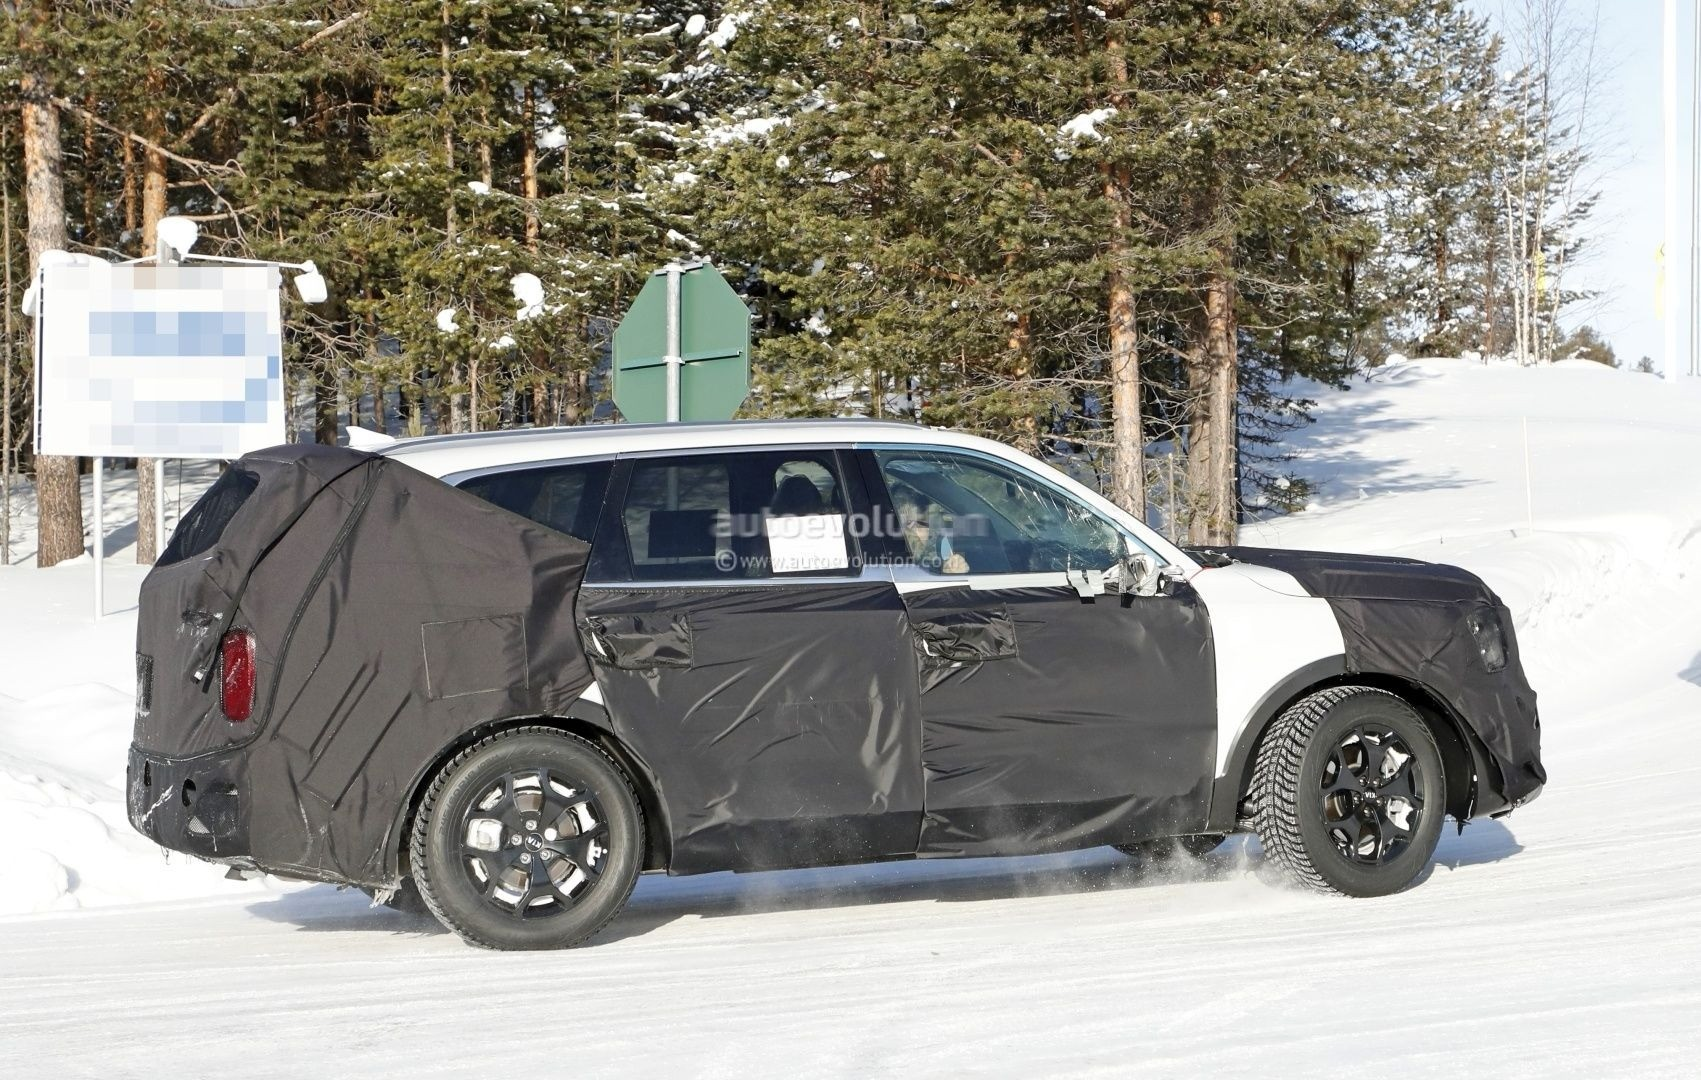 Spyshots: 2019 Kia Telluride SUV Is Out For Volkswagen Atlas Blood - autoevolution